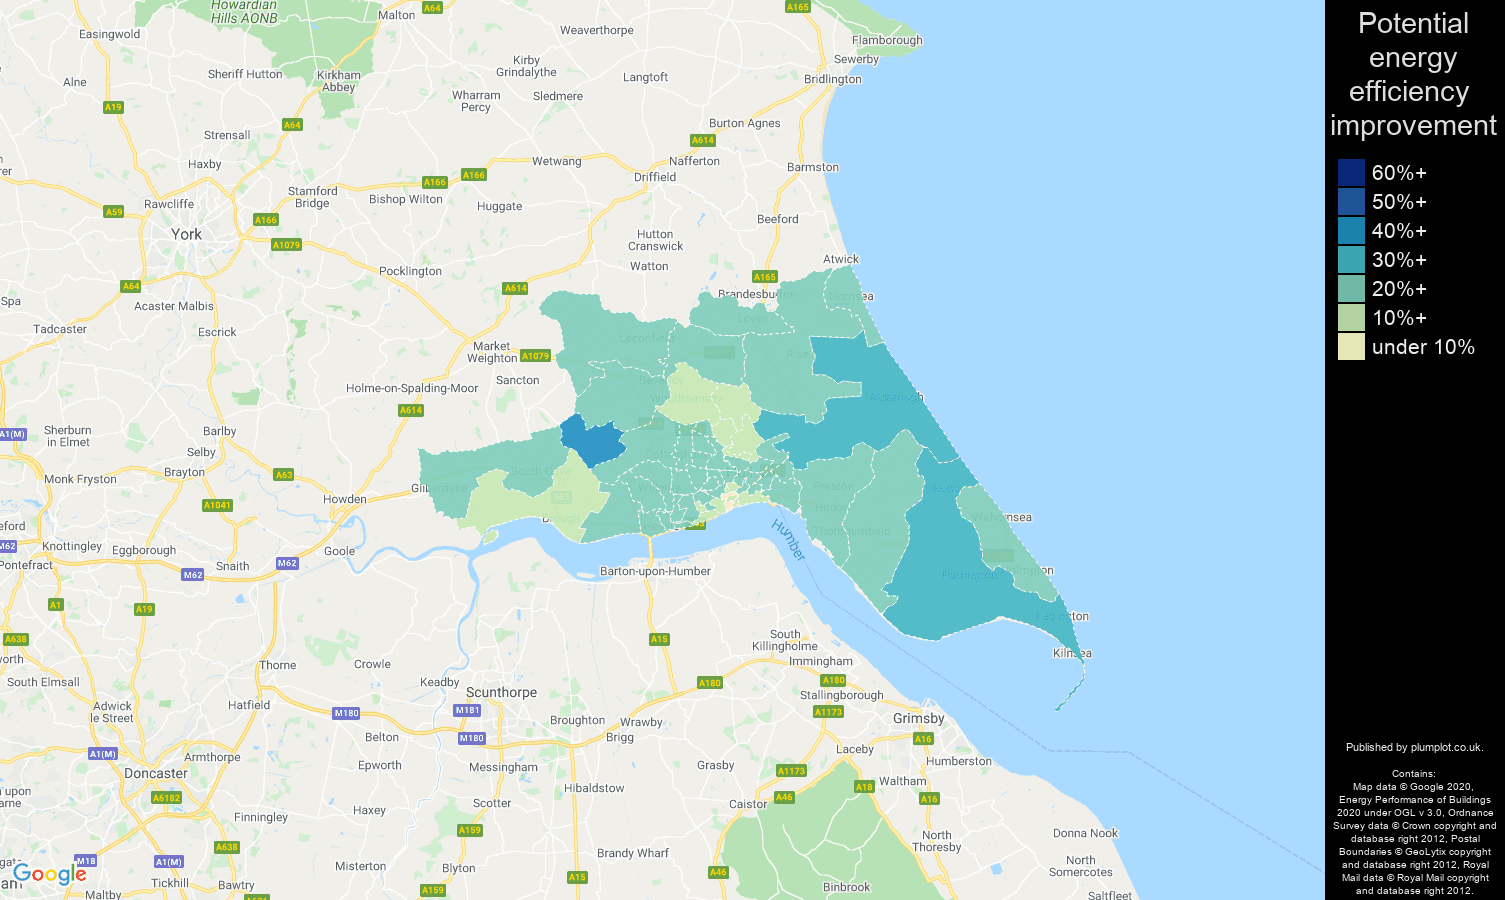 Hull map of potential energy efficiency improvement of properties